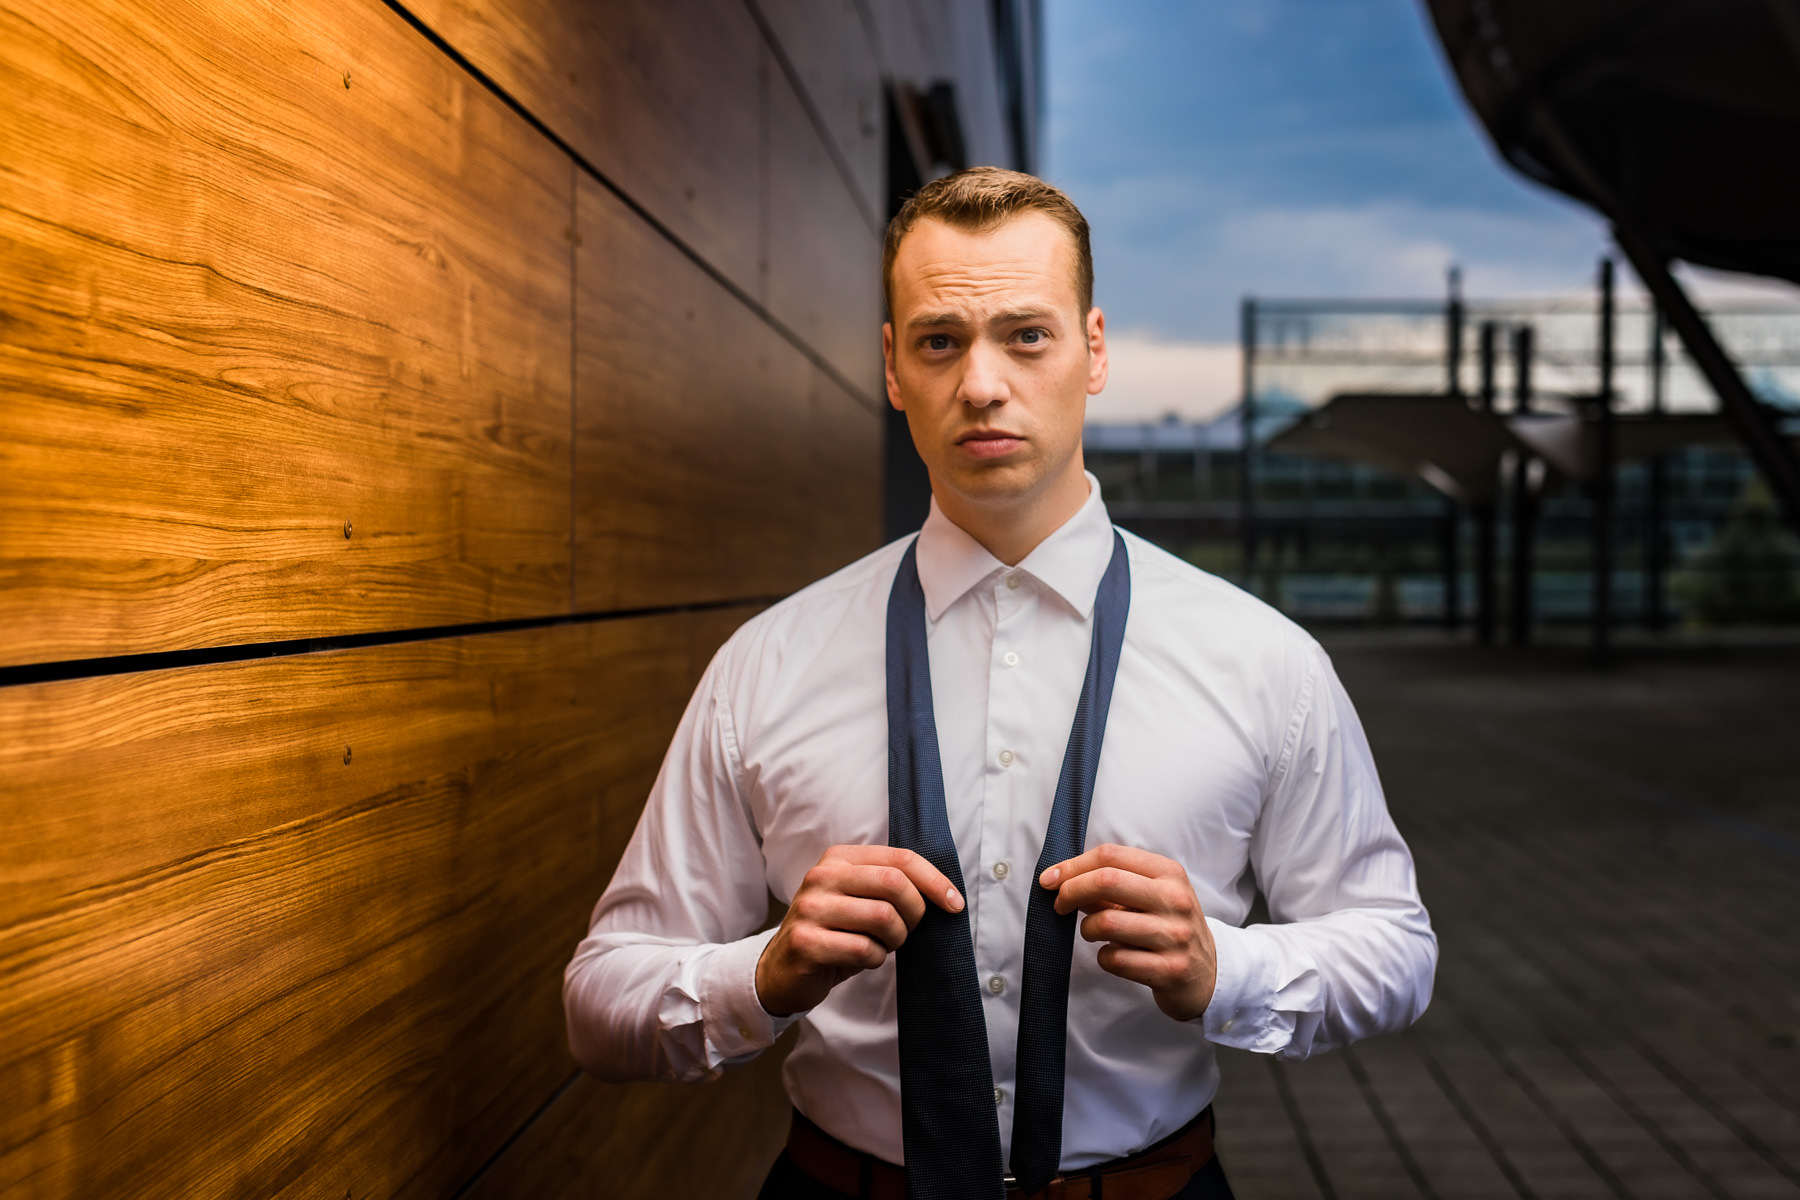 BUSINESS-PORTRAITS -